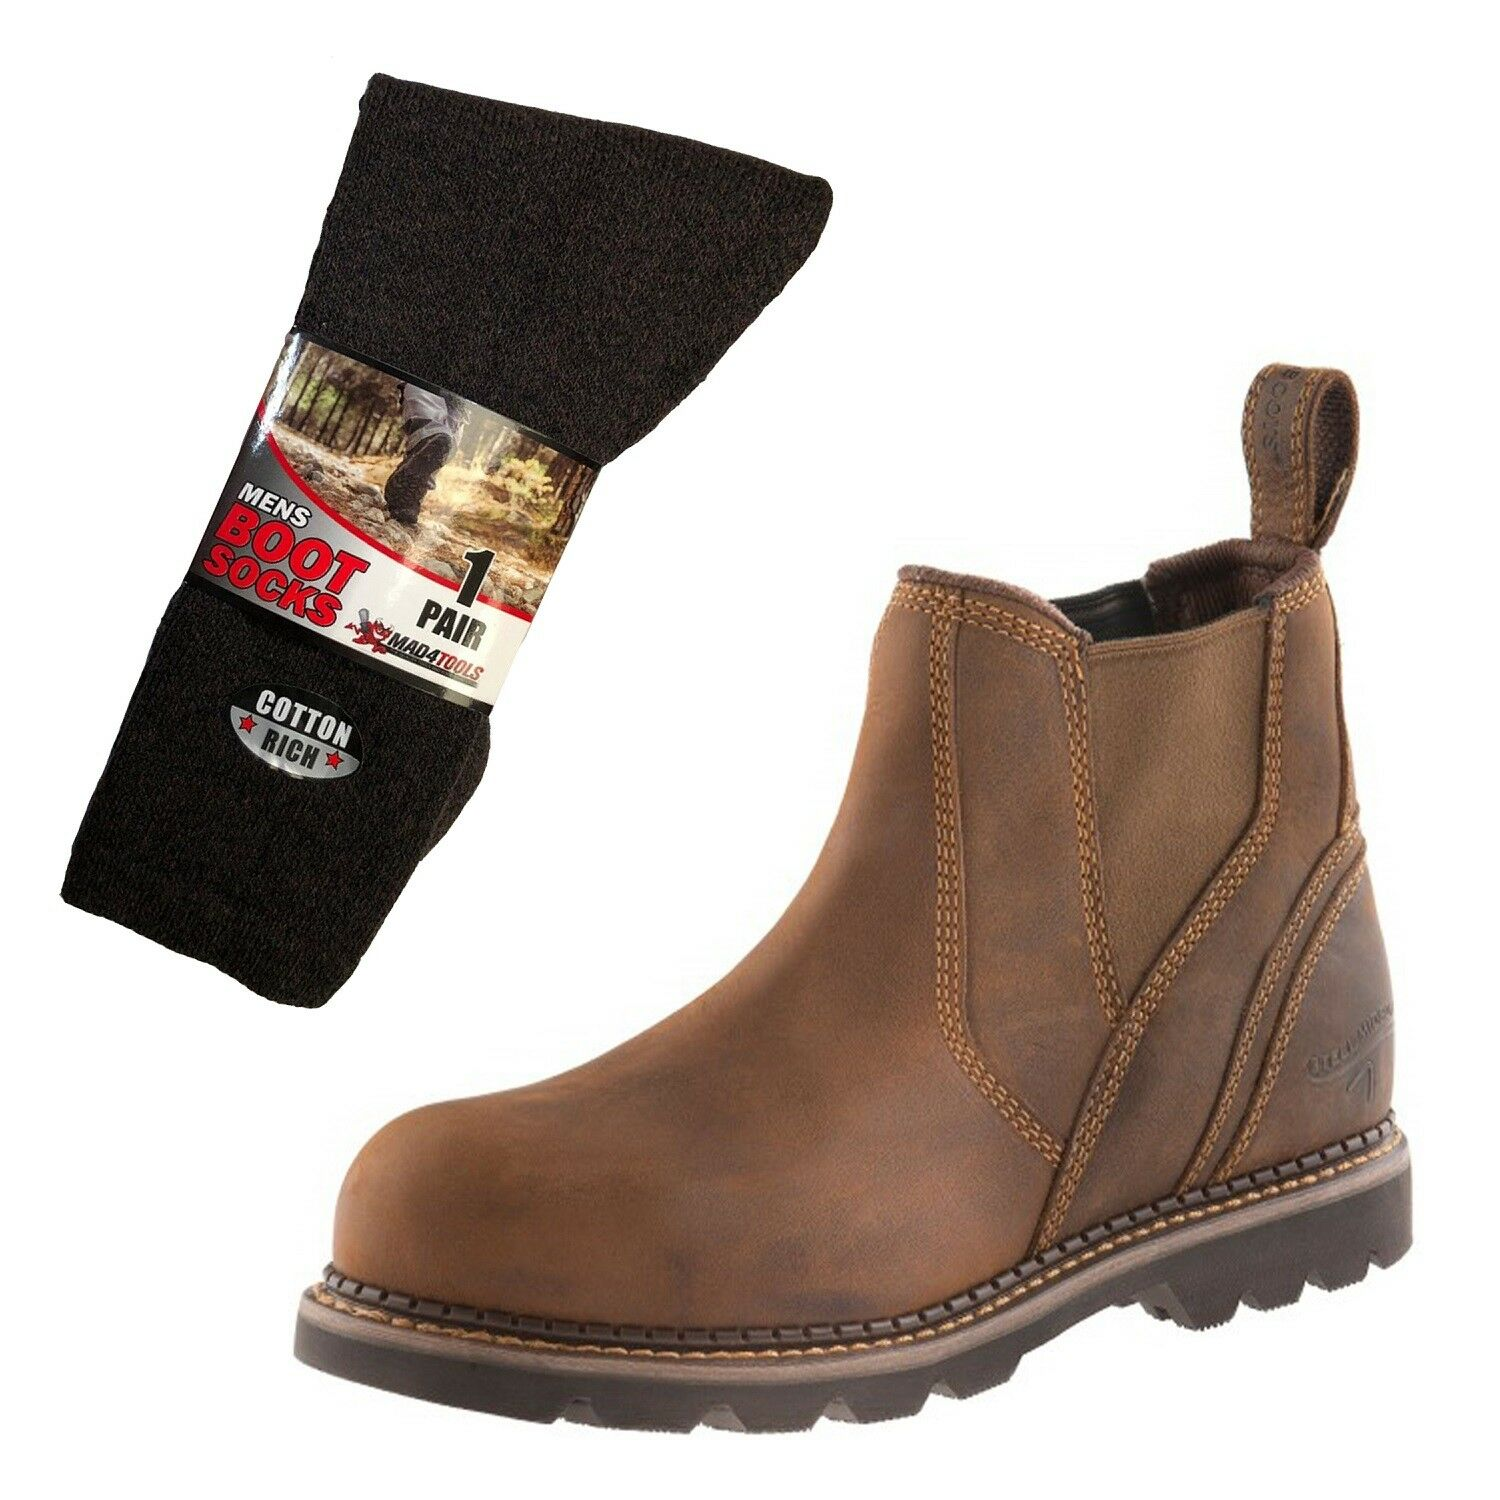 Buckler B1555SM Safety Dealer Boots Brown (Sizes 6-13) & 1 Pair of Socks